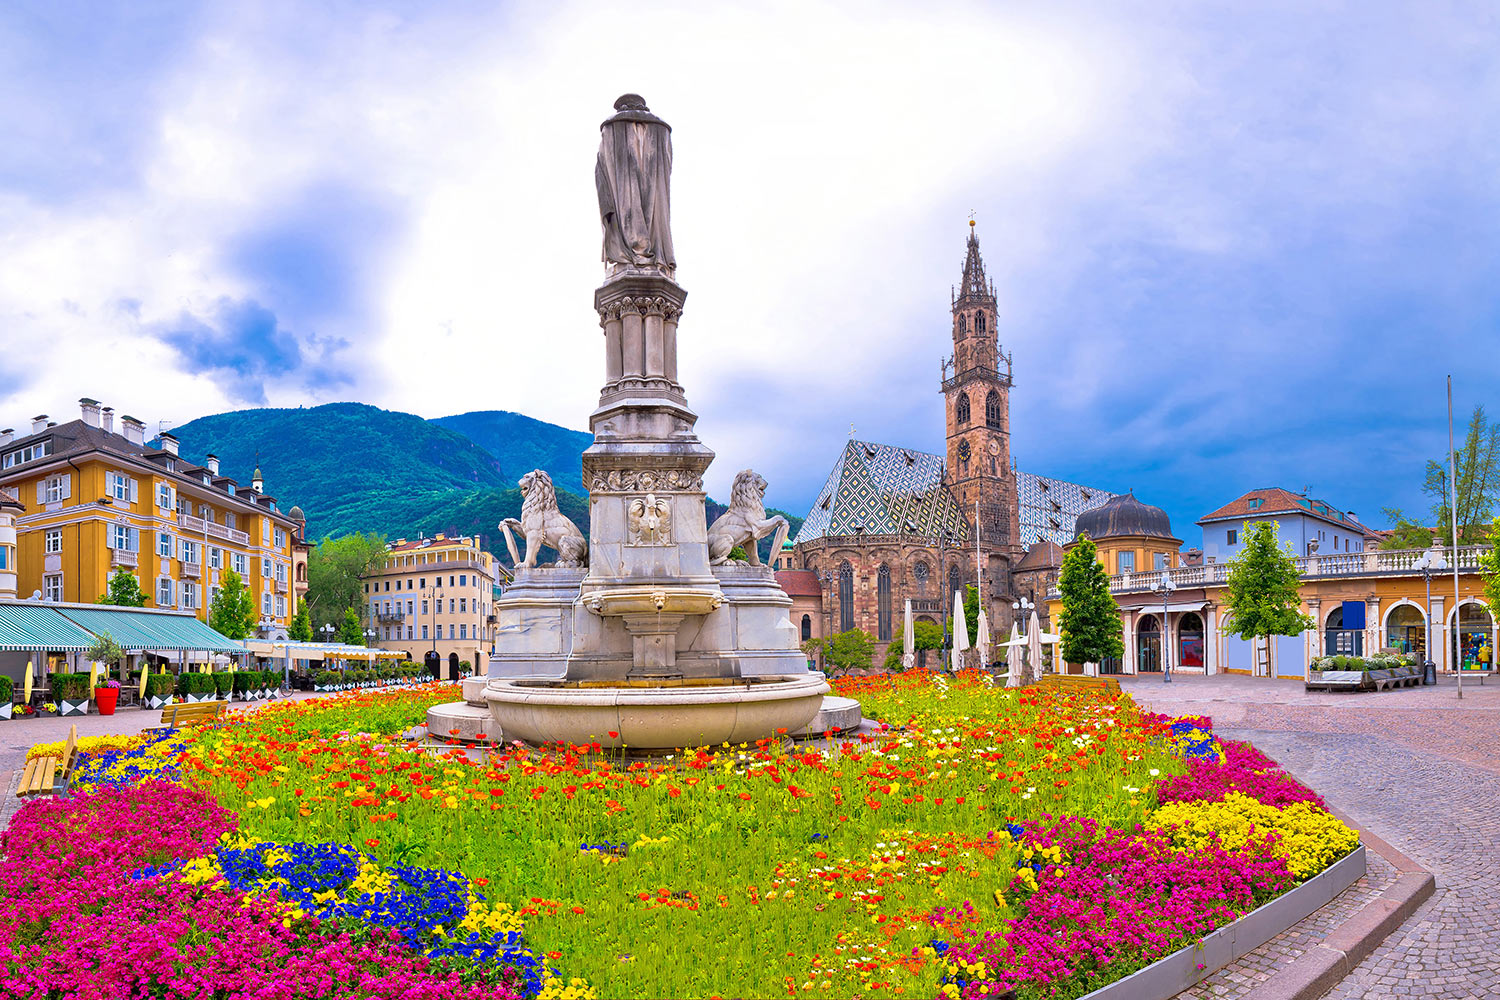 Things to see in Bolzano